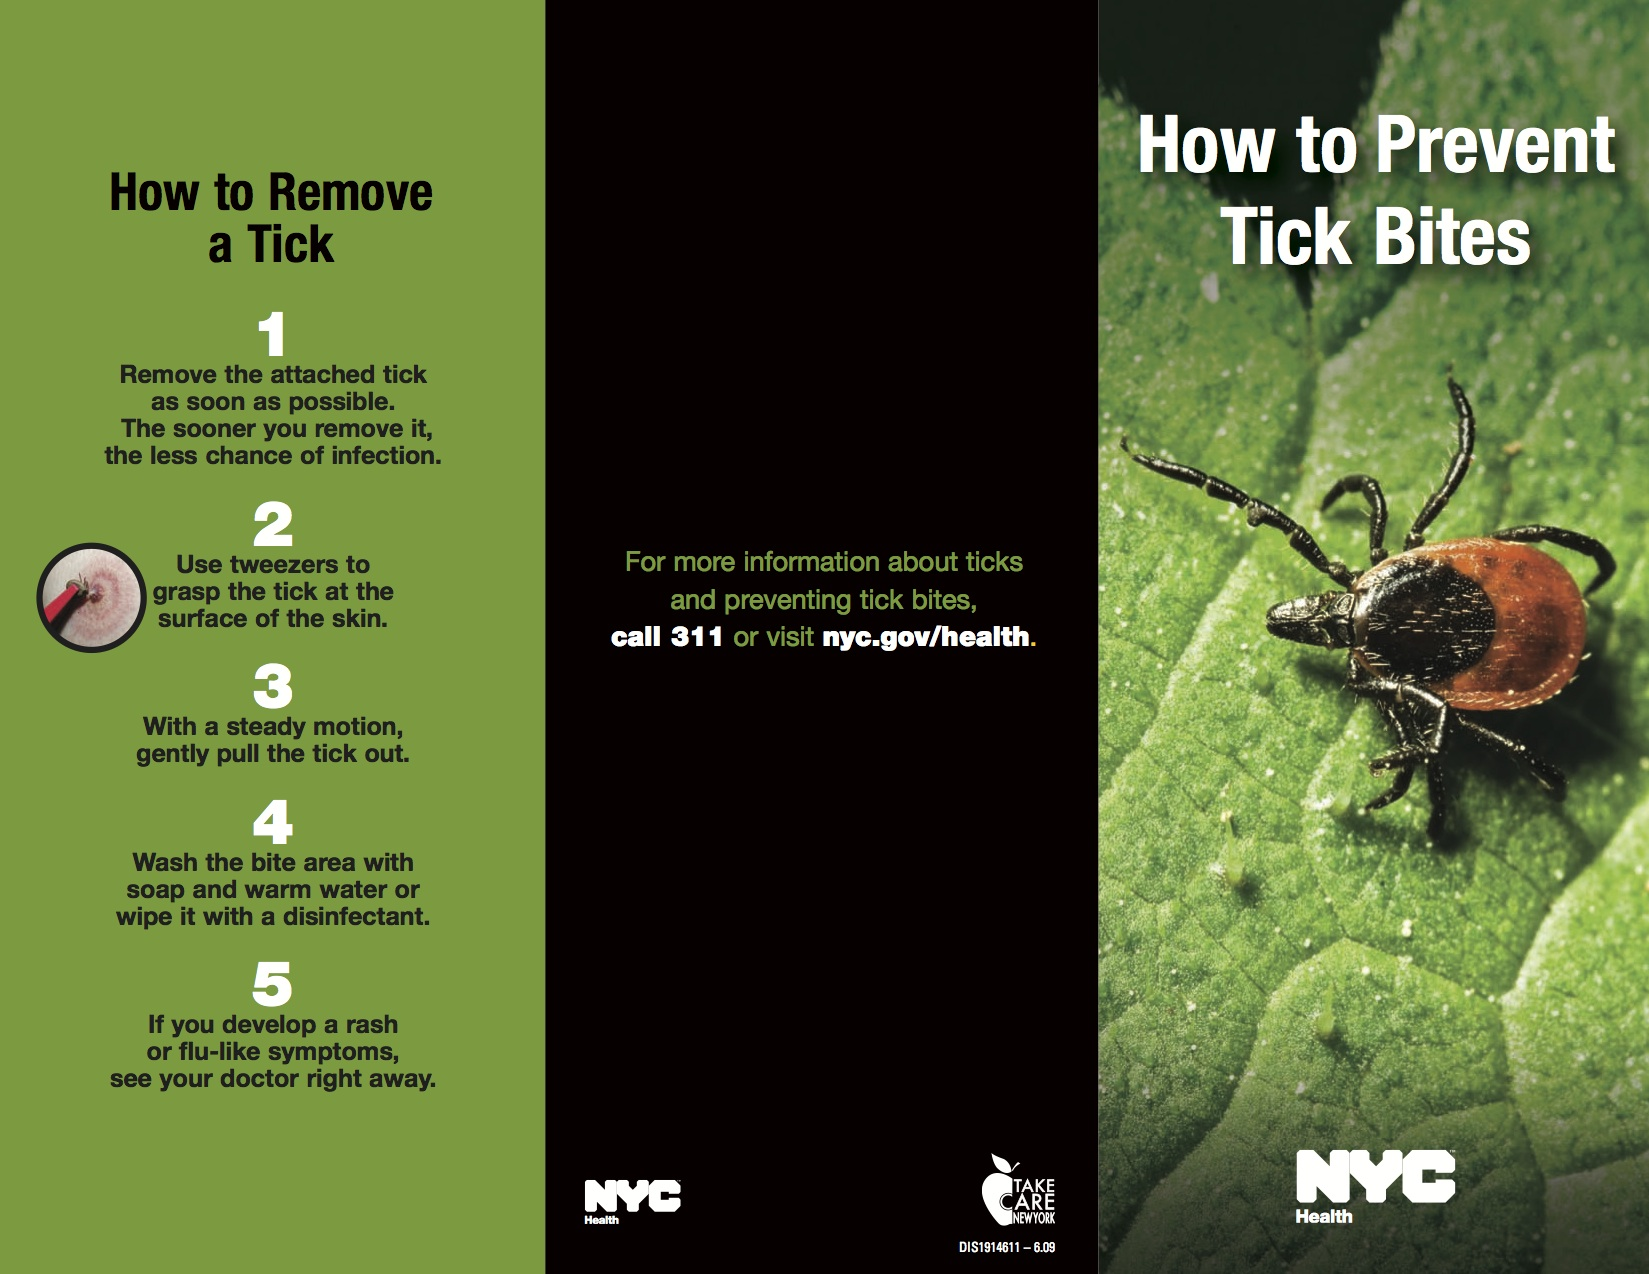 zoo-preventing-tick-bites